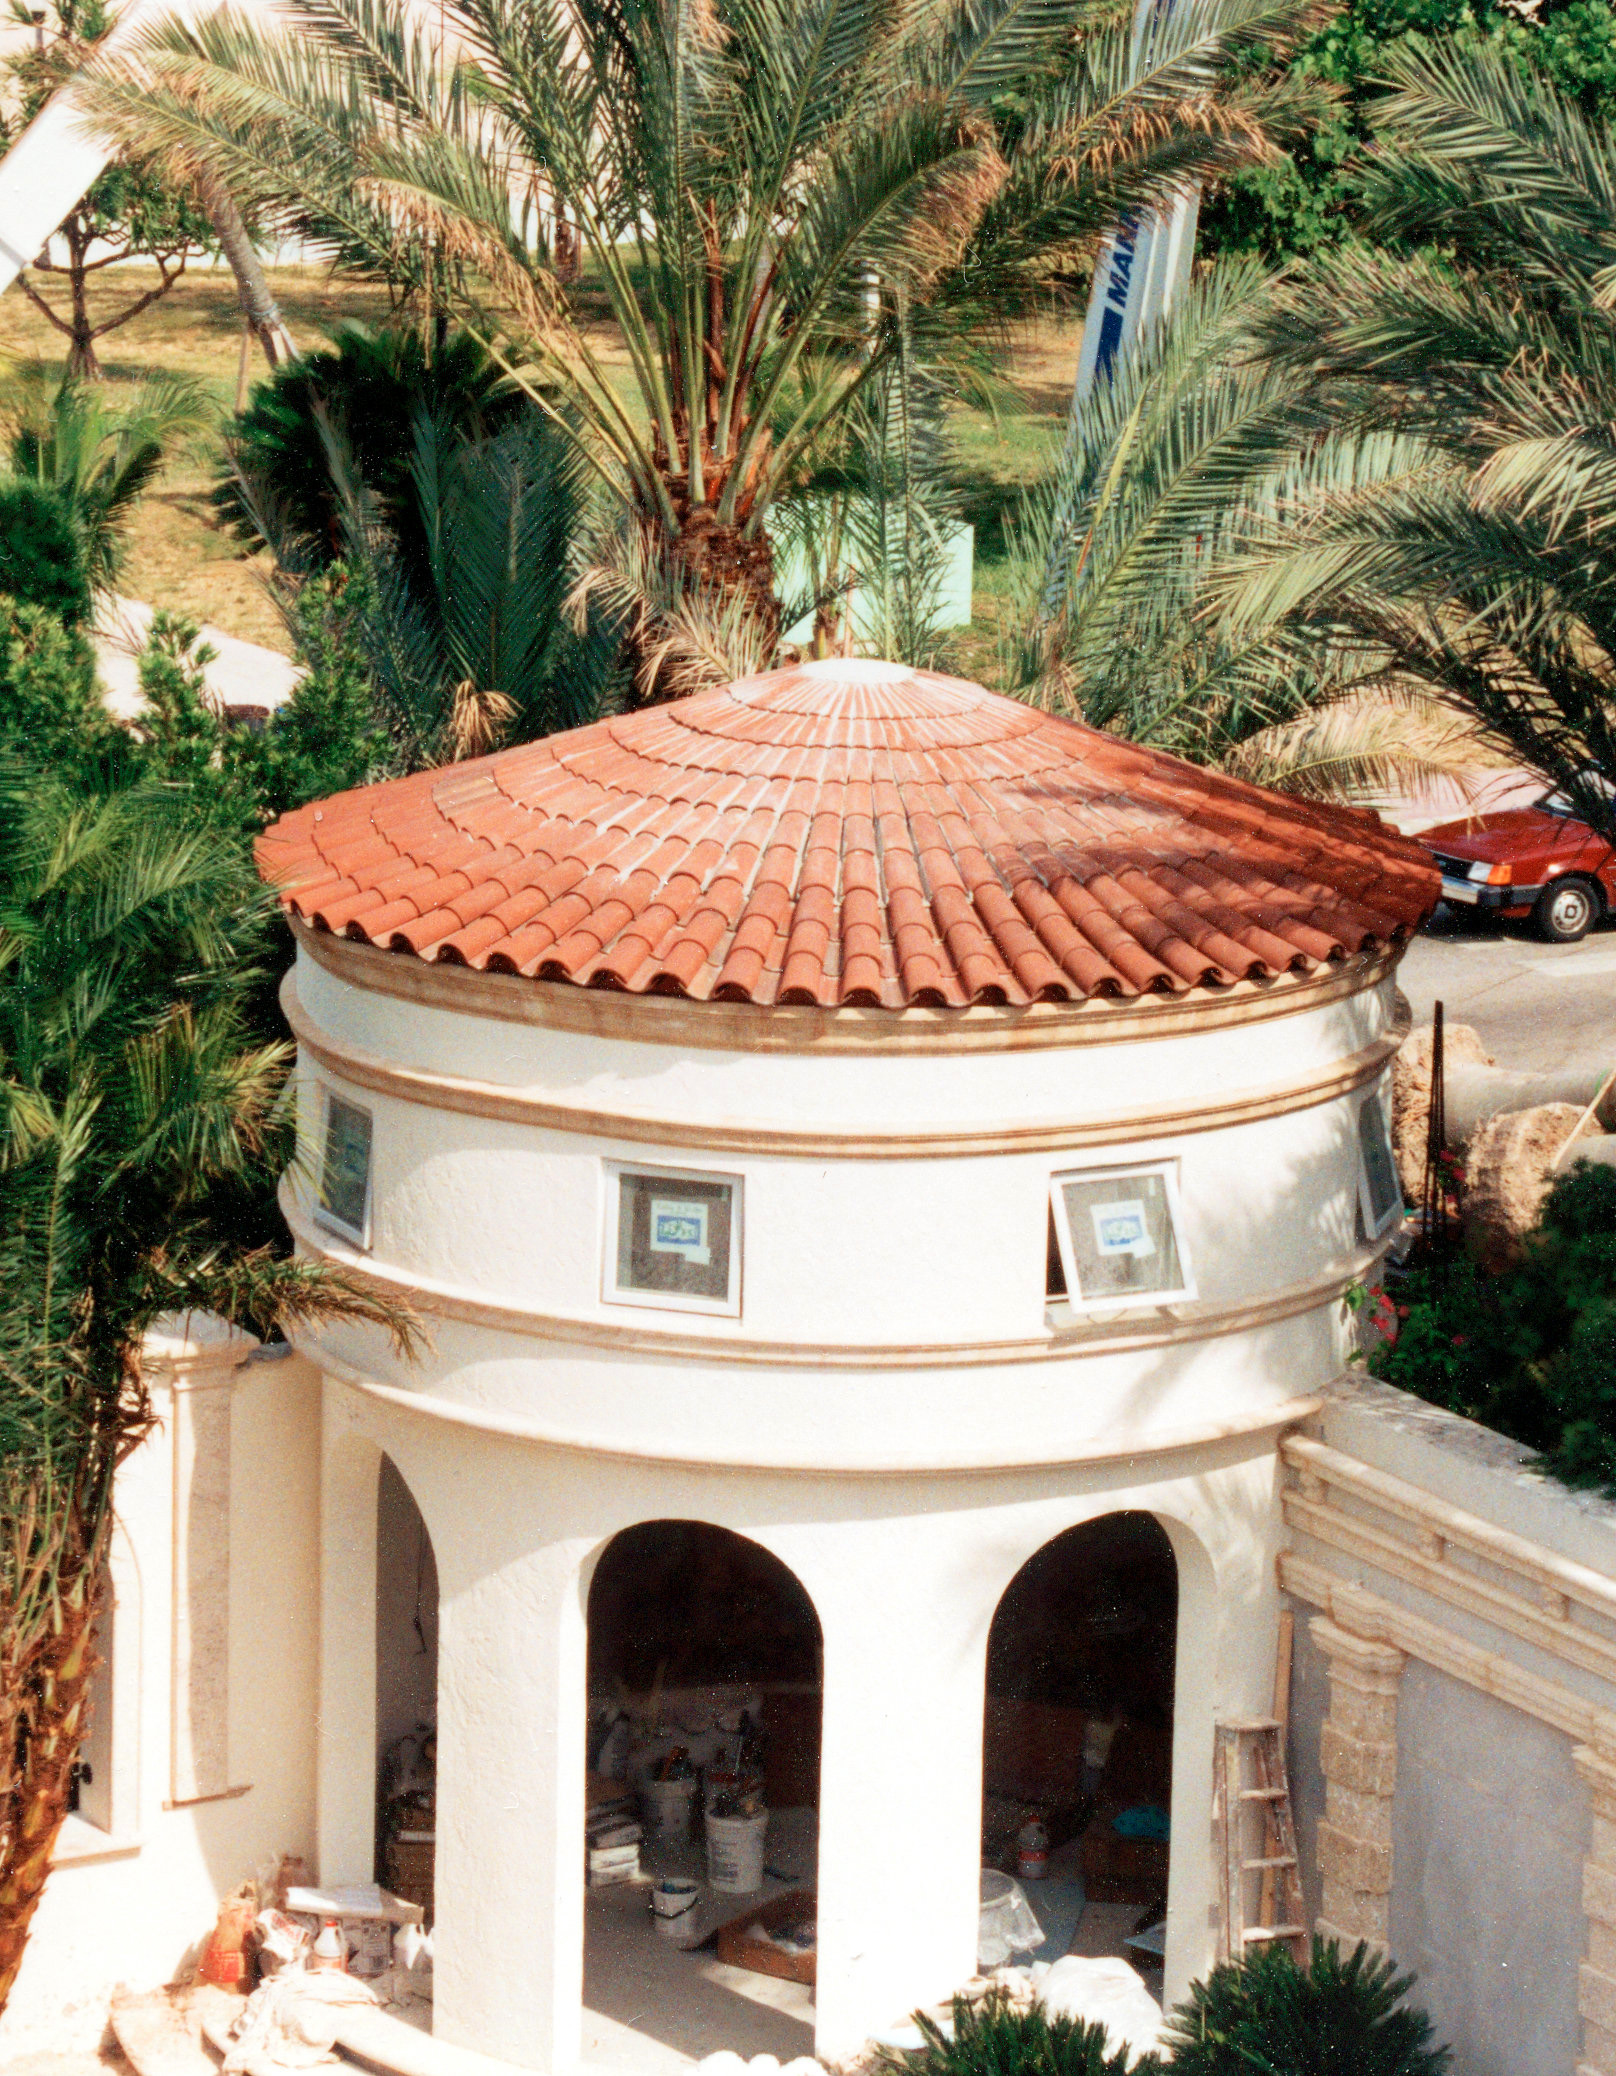 rounded clay tile roof